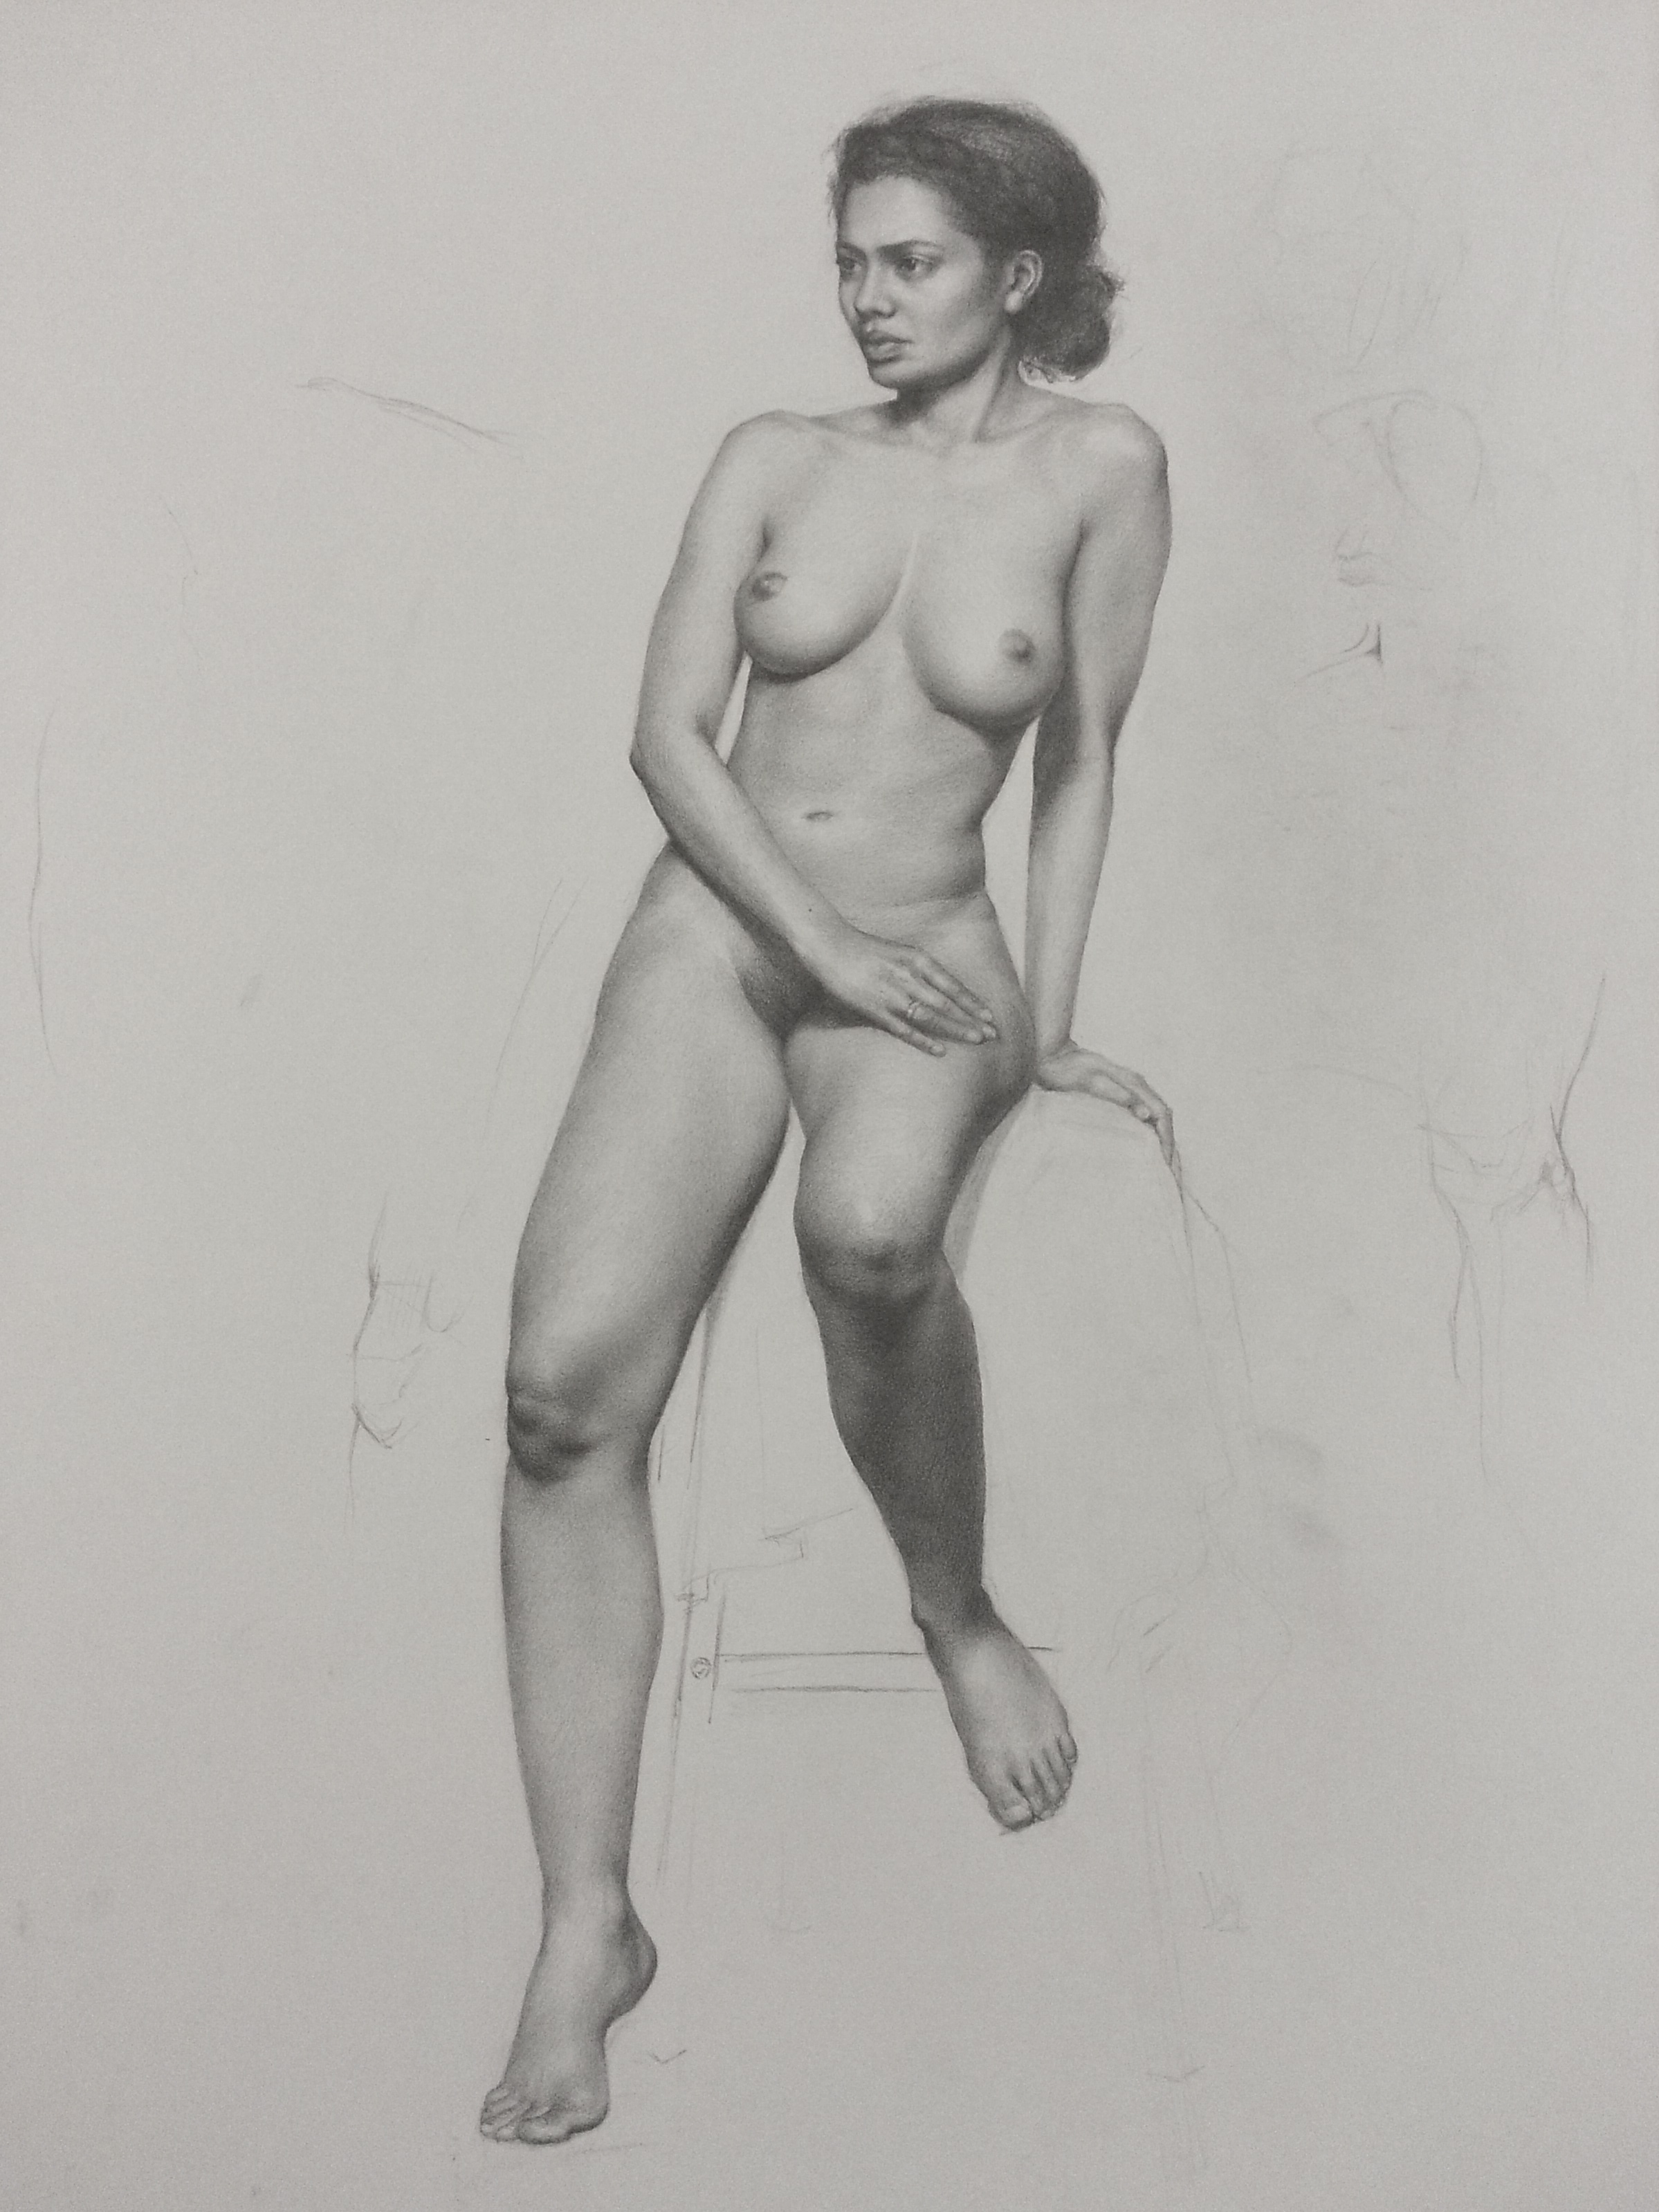 Female Figure Study, Toni Ann